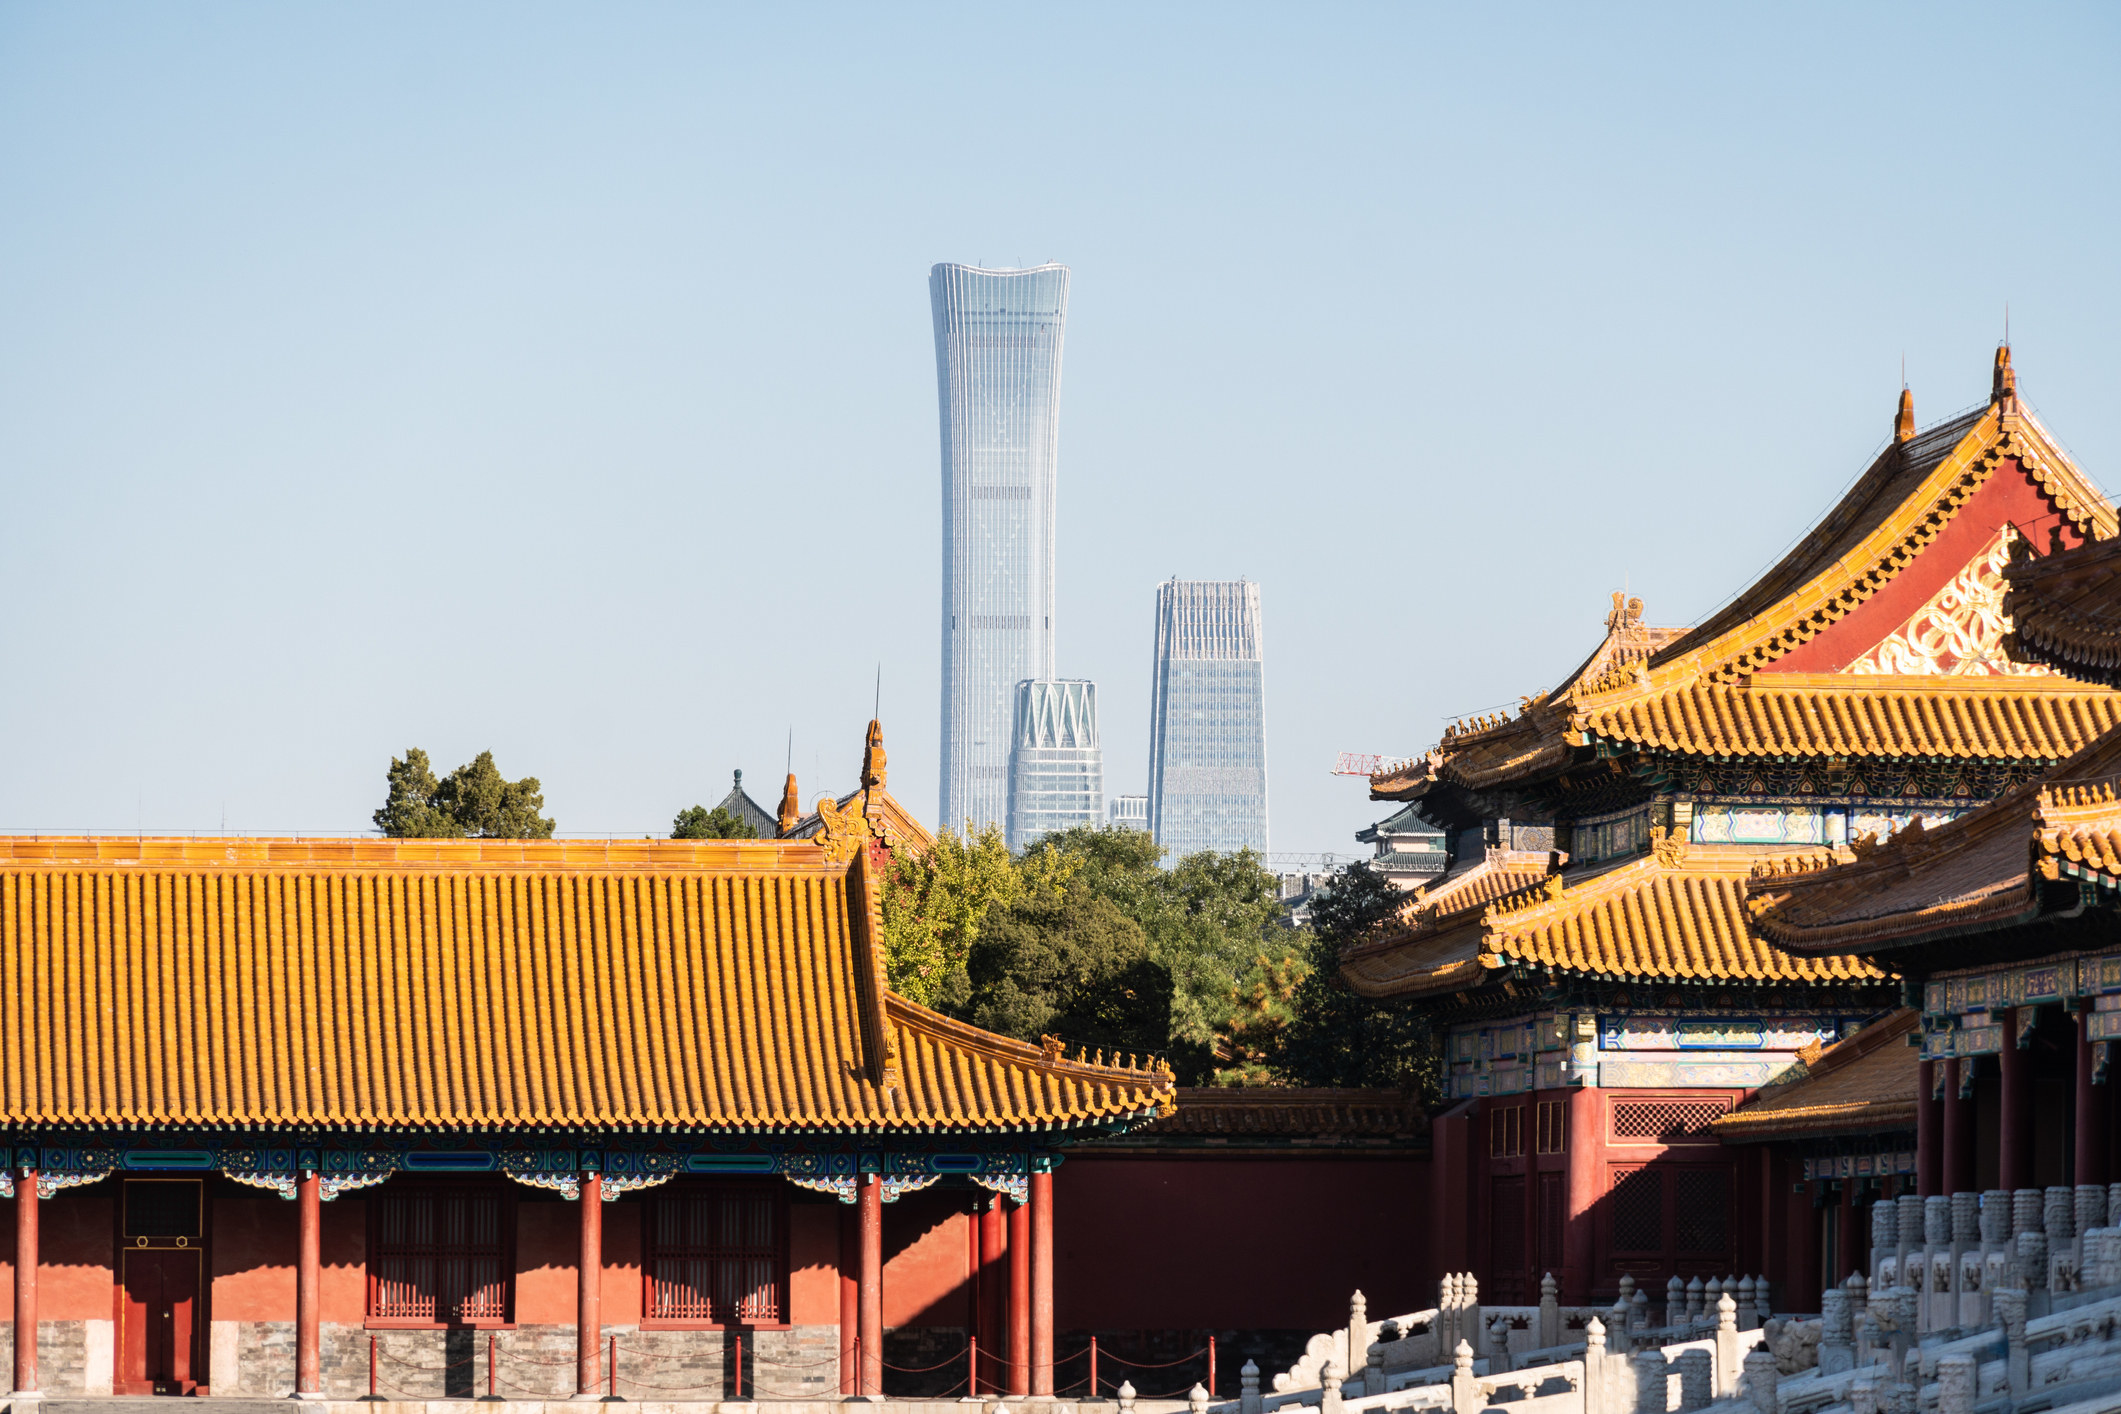 The forbidden city in Beijing and modern buildings in the background.